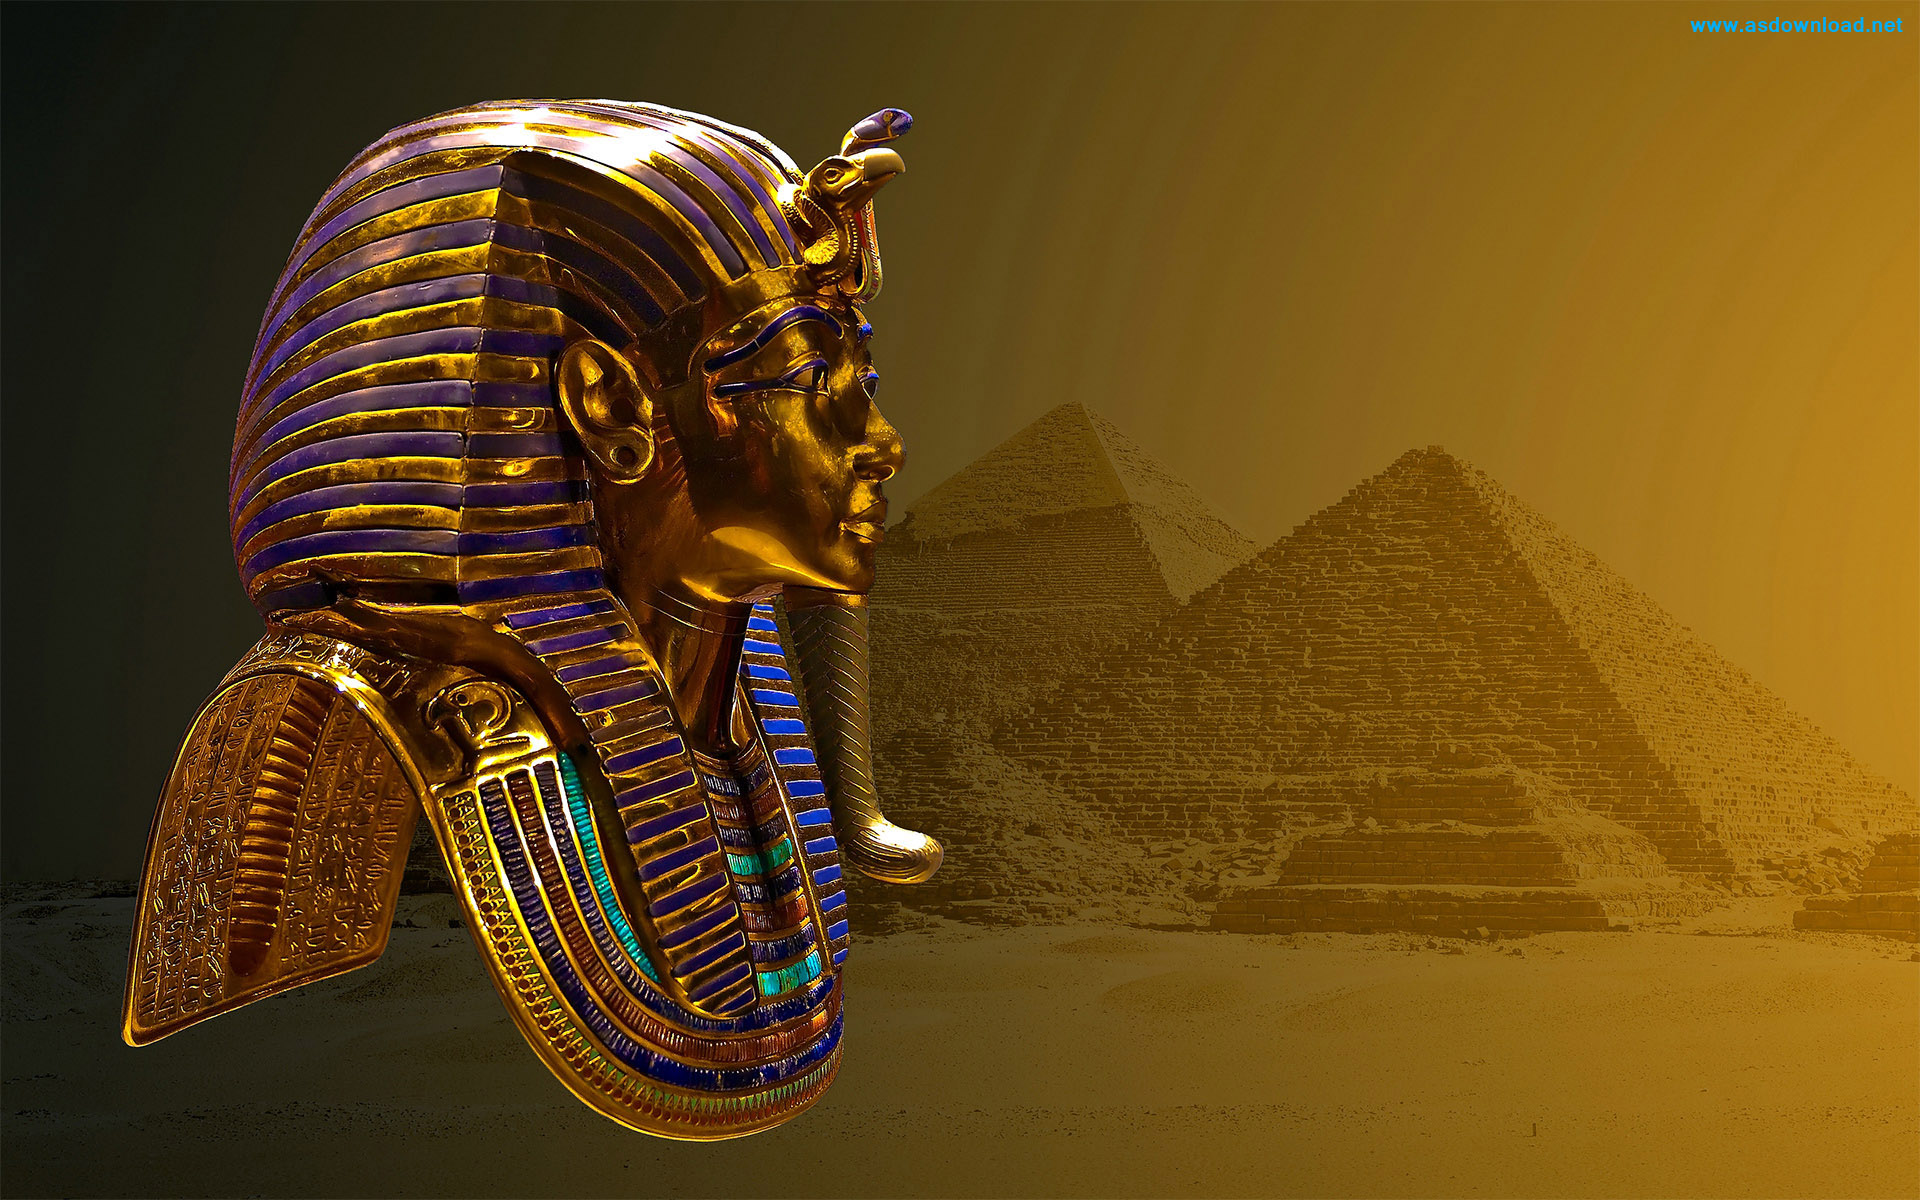 3D-Tutankhamun-Mask-Wallpaper